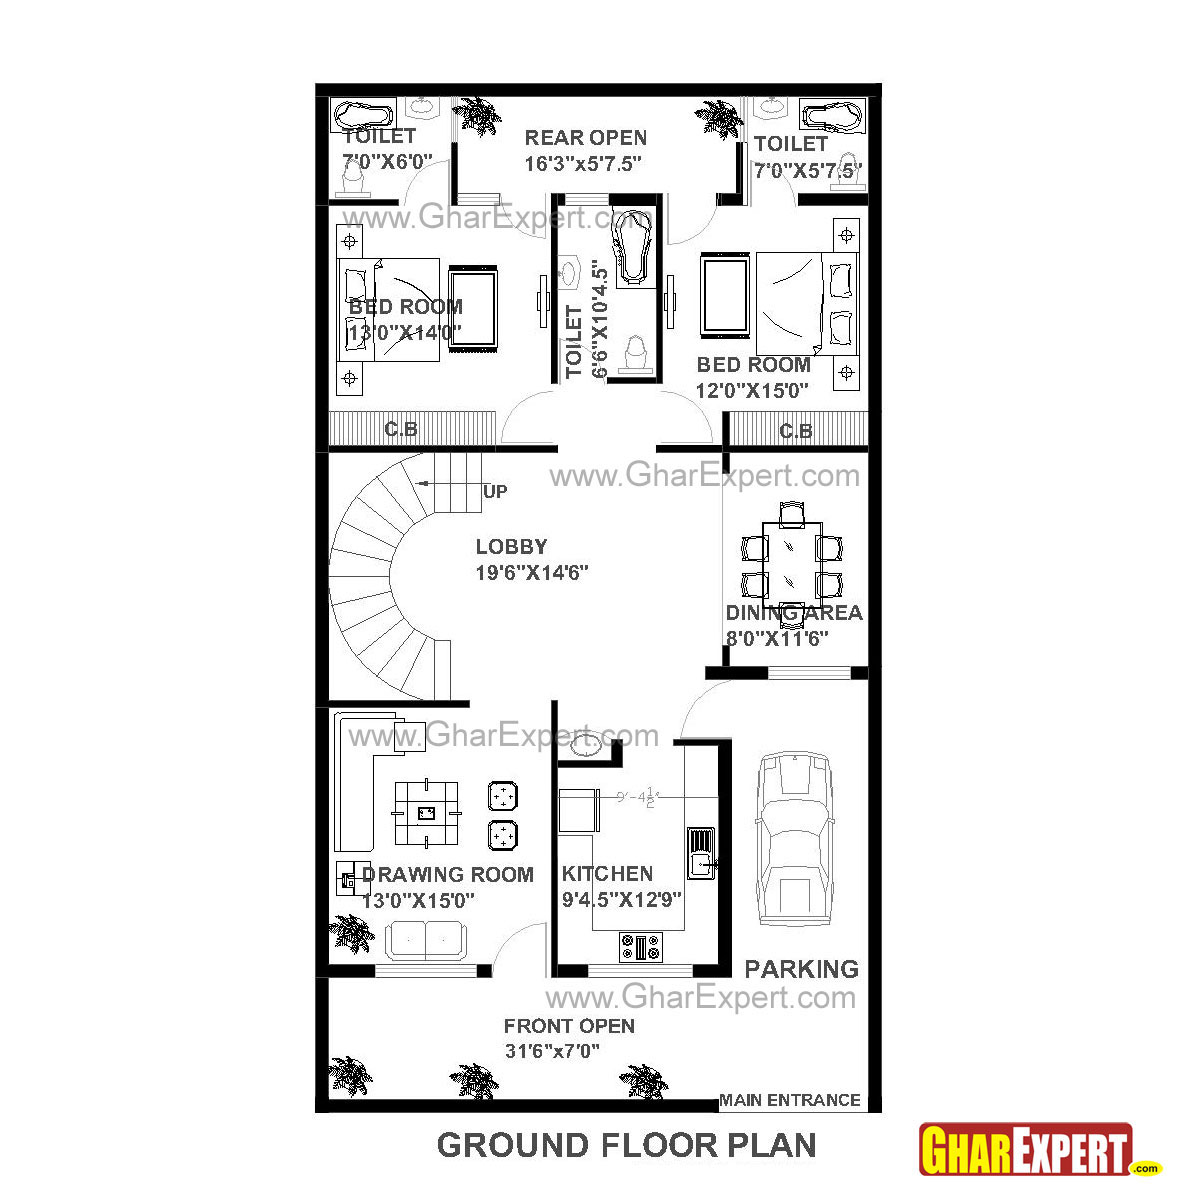 South Facing House Plans 30 X 60 on 30 x 60 ft site west facing duplex house plans